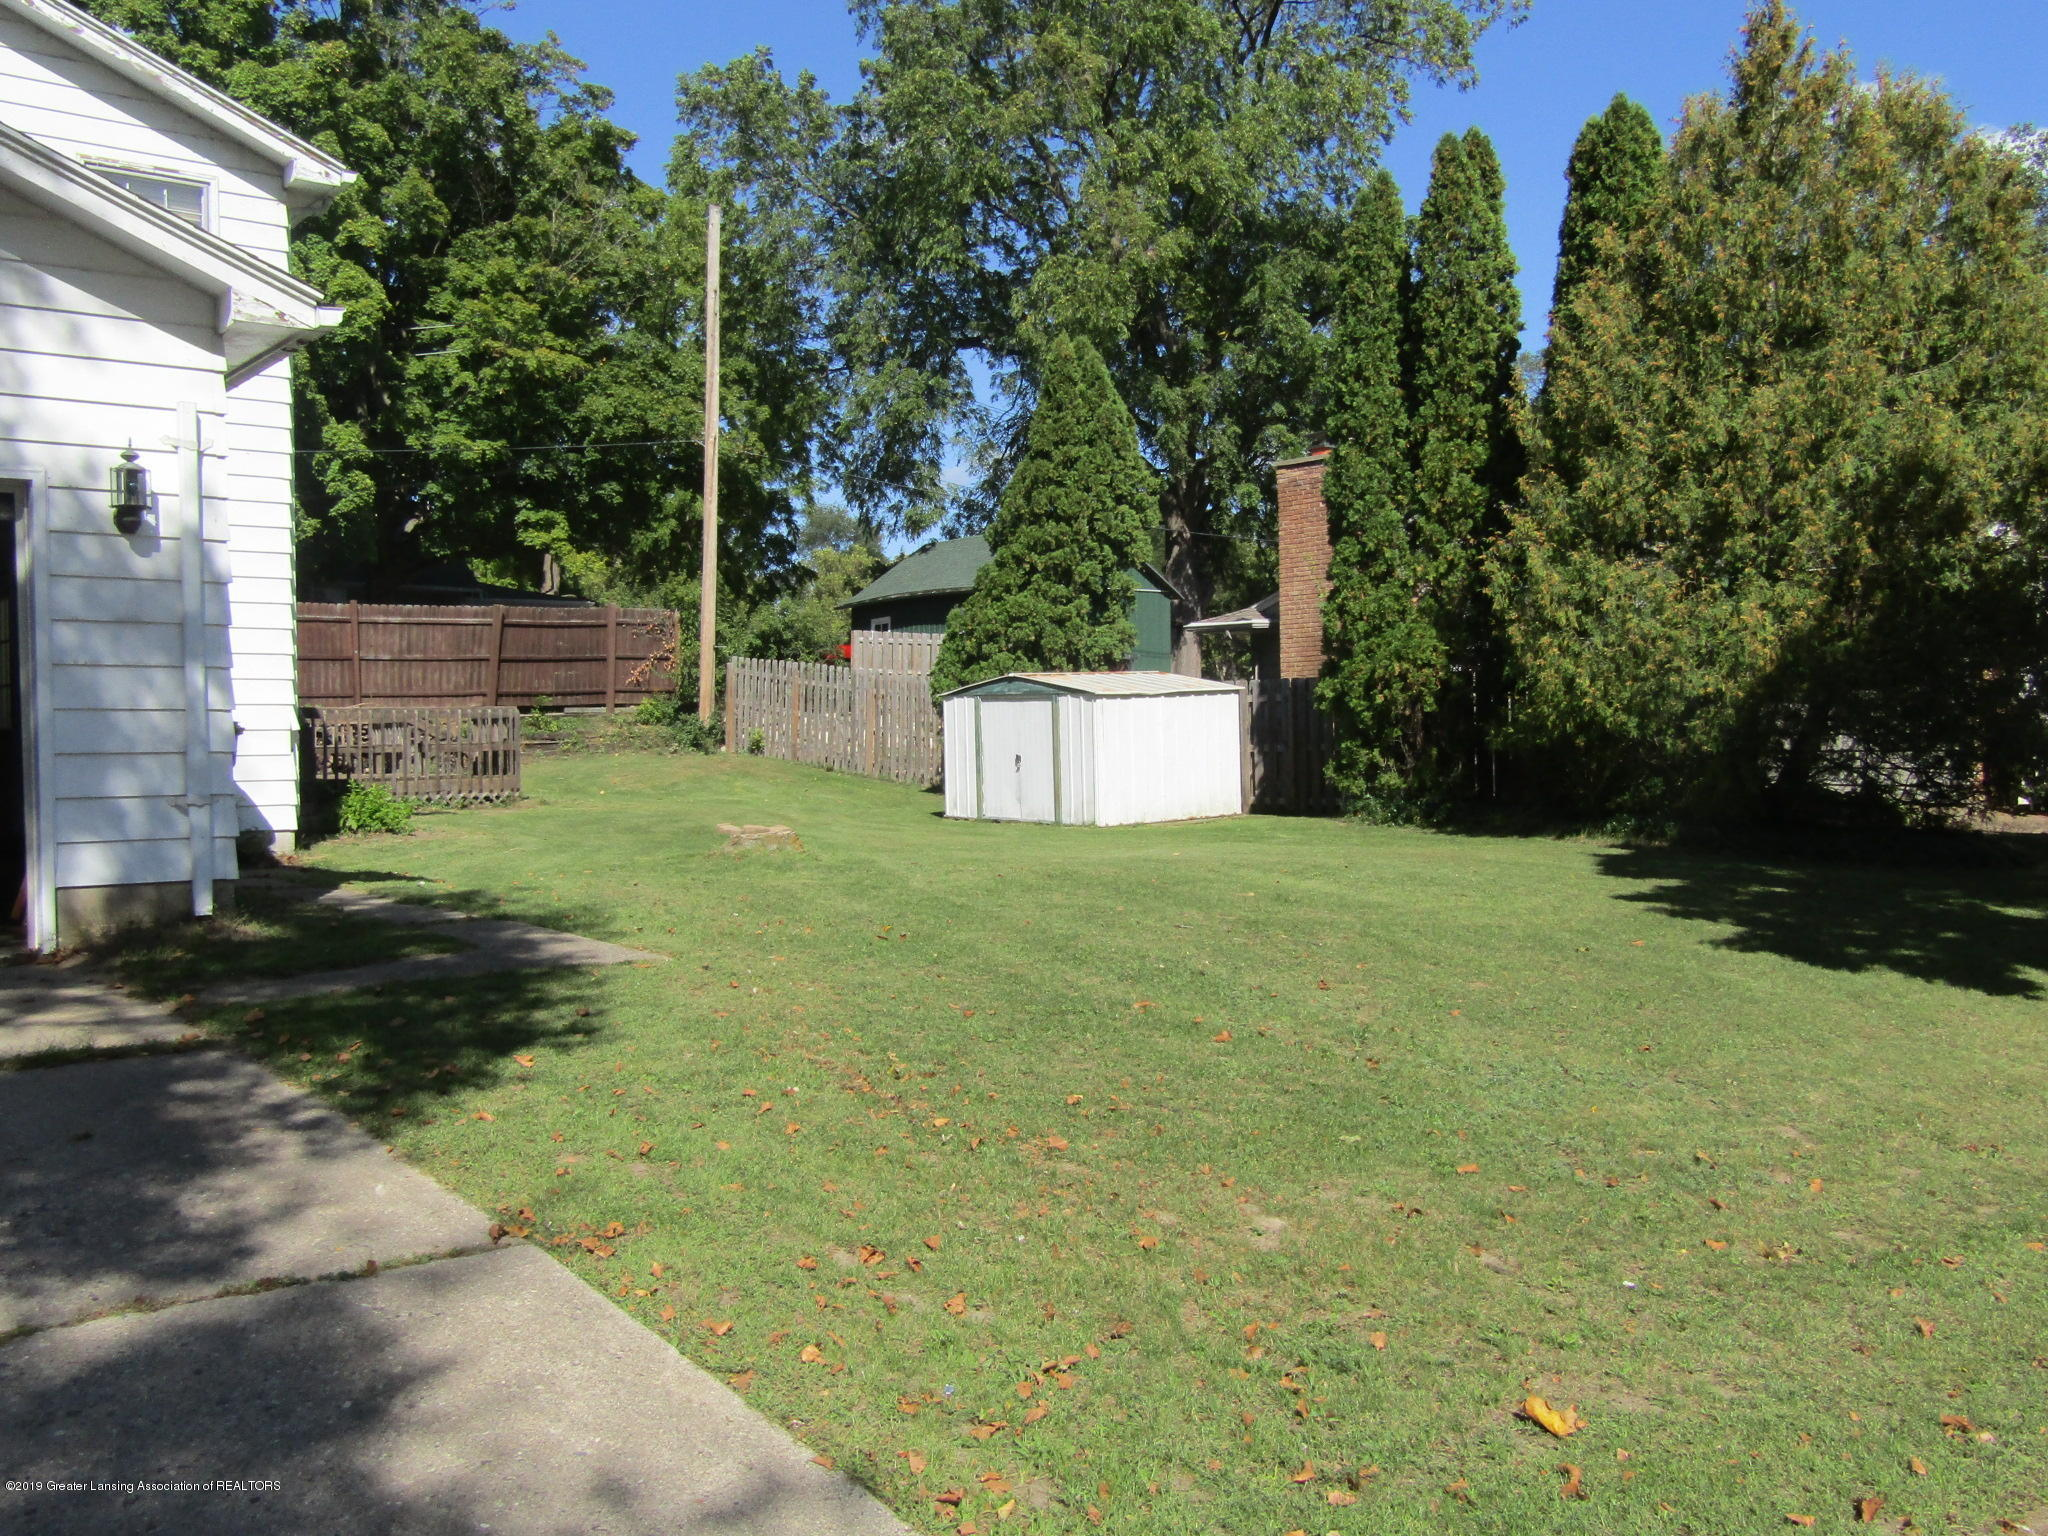 2621 S Waverly Rd - Yard - 48